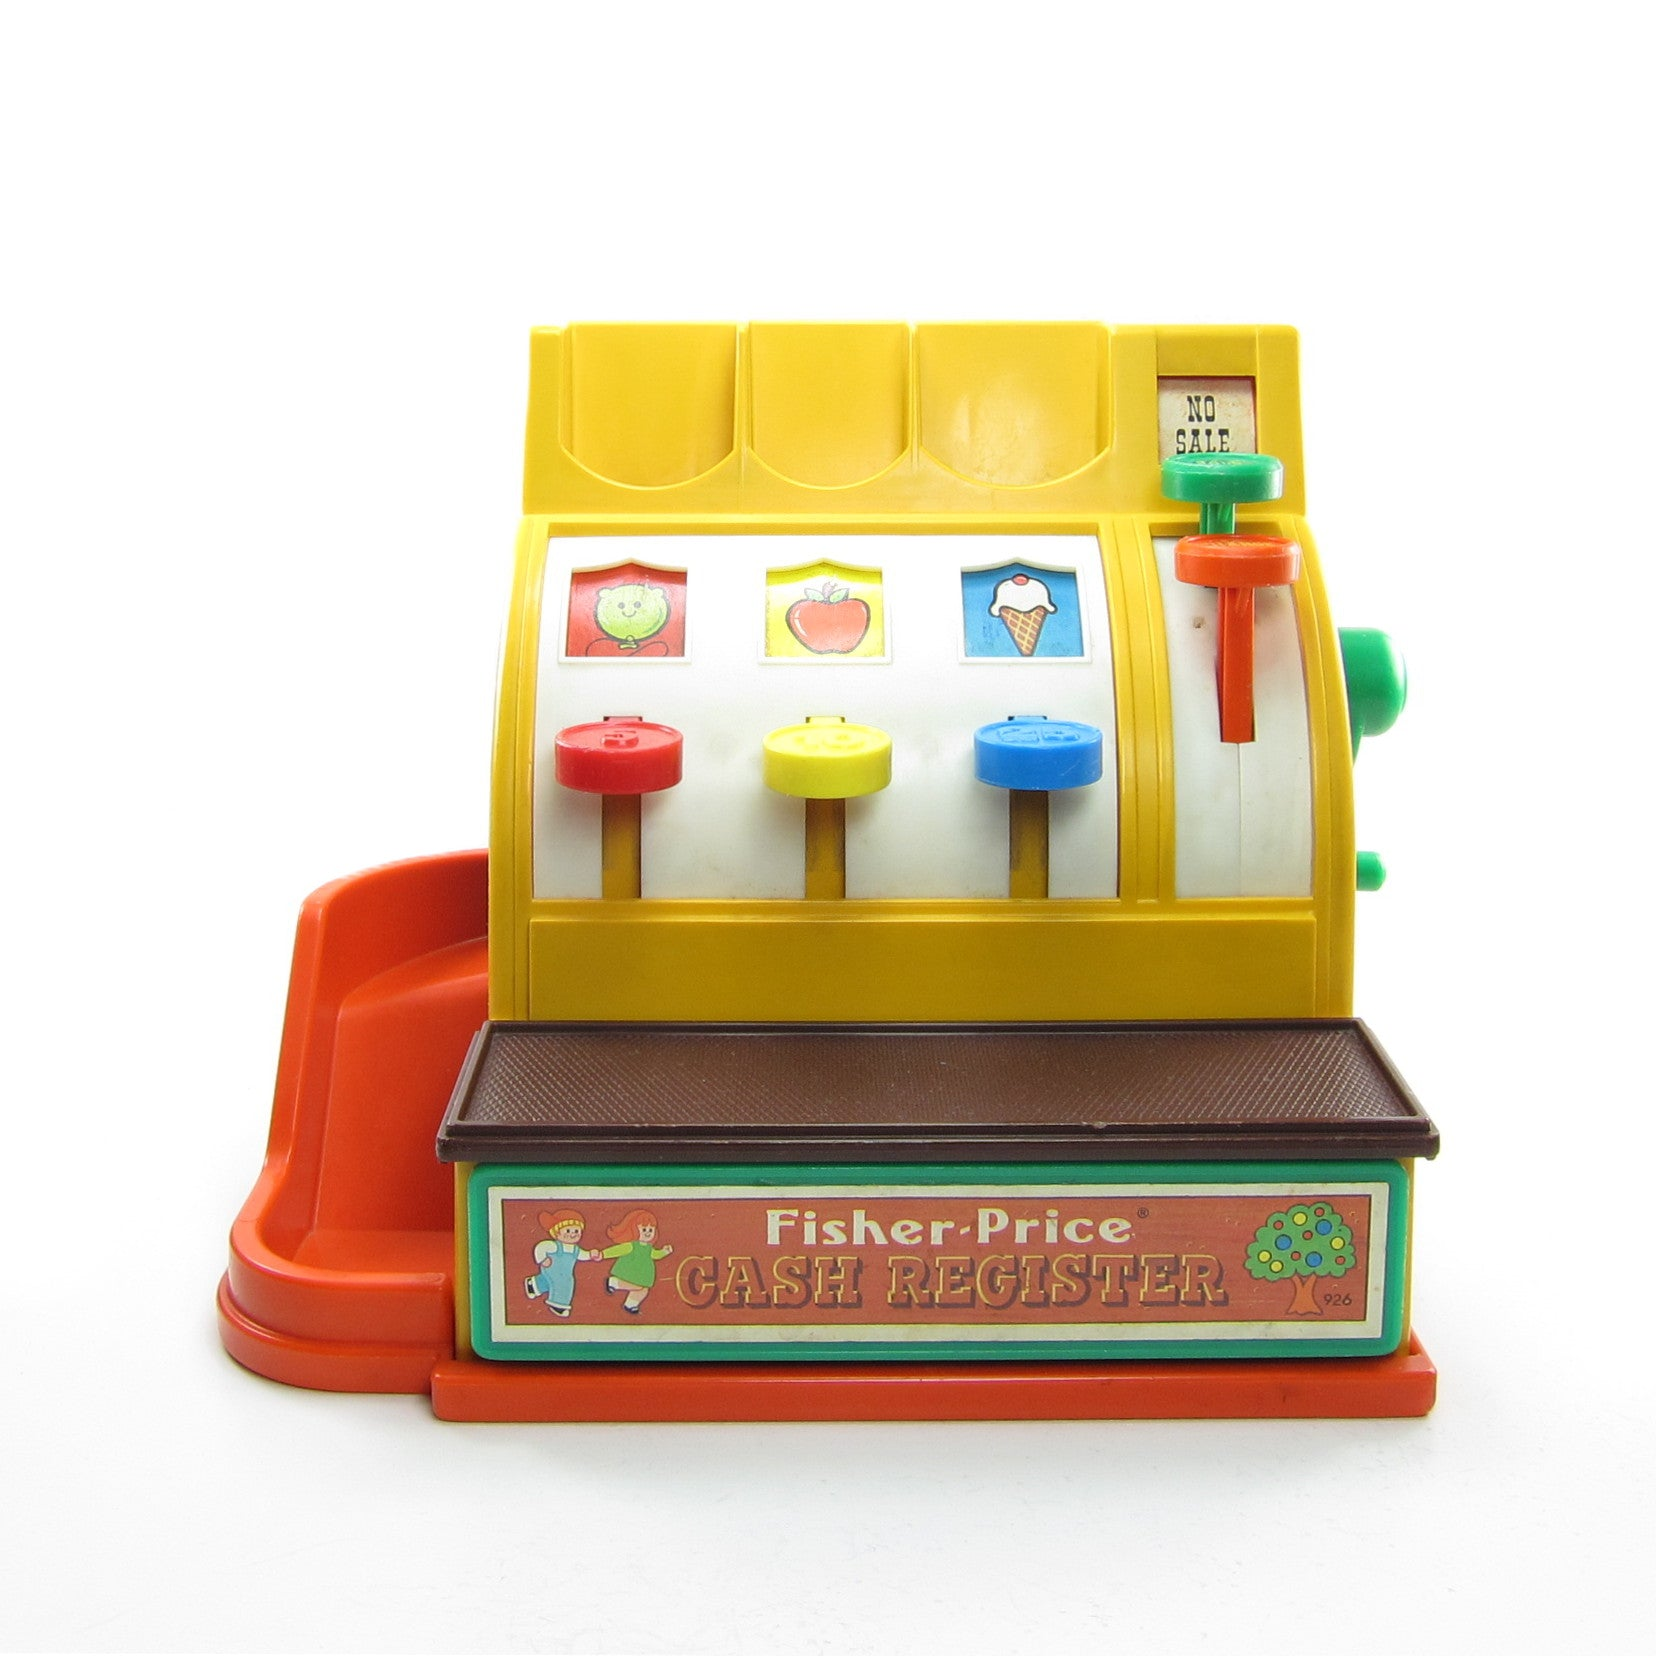 Fisher-Price cash register toy 1974